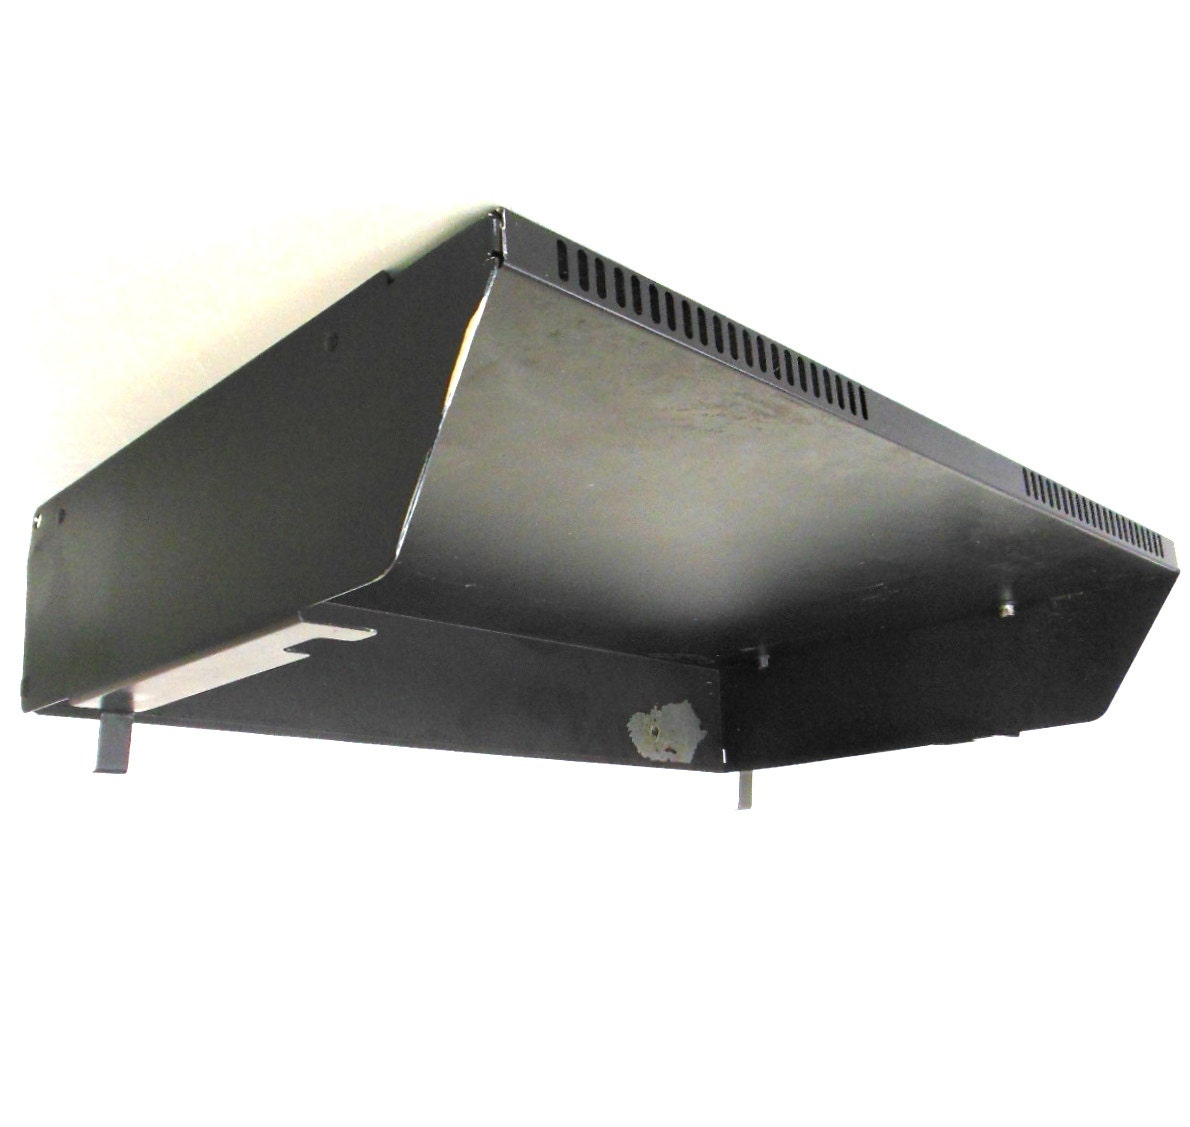 Black Amp Decker Toaster Oven Mounting Hood For Tro200 Tro400